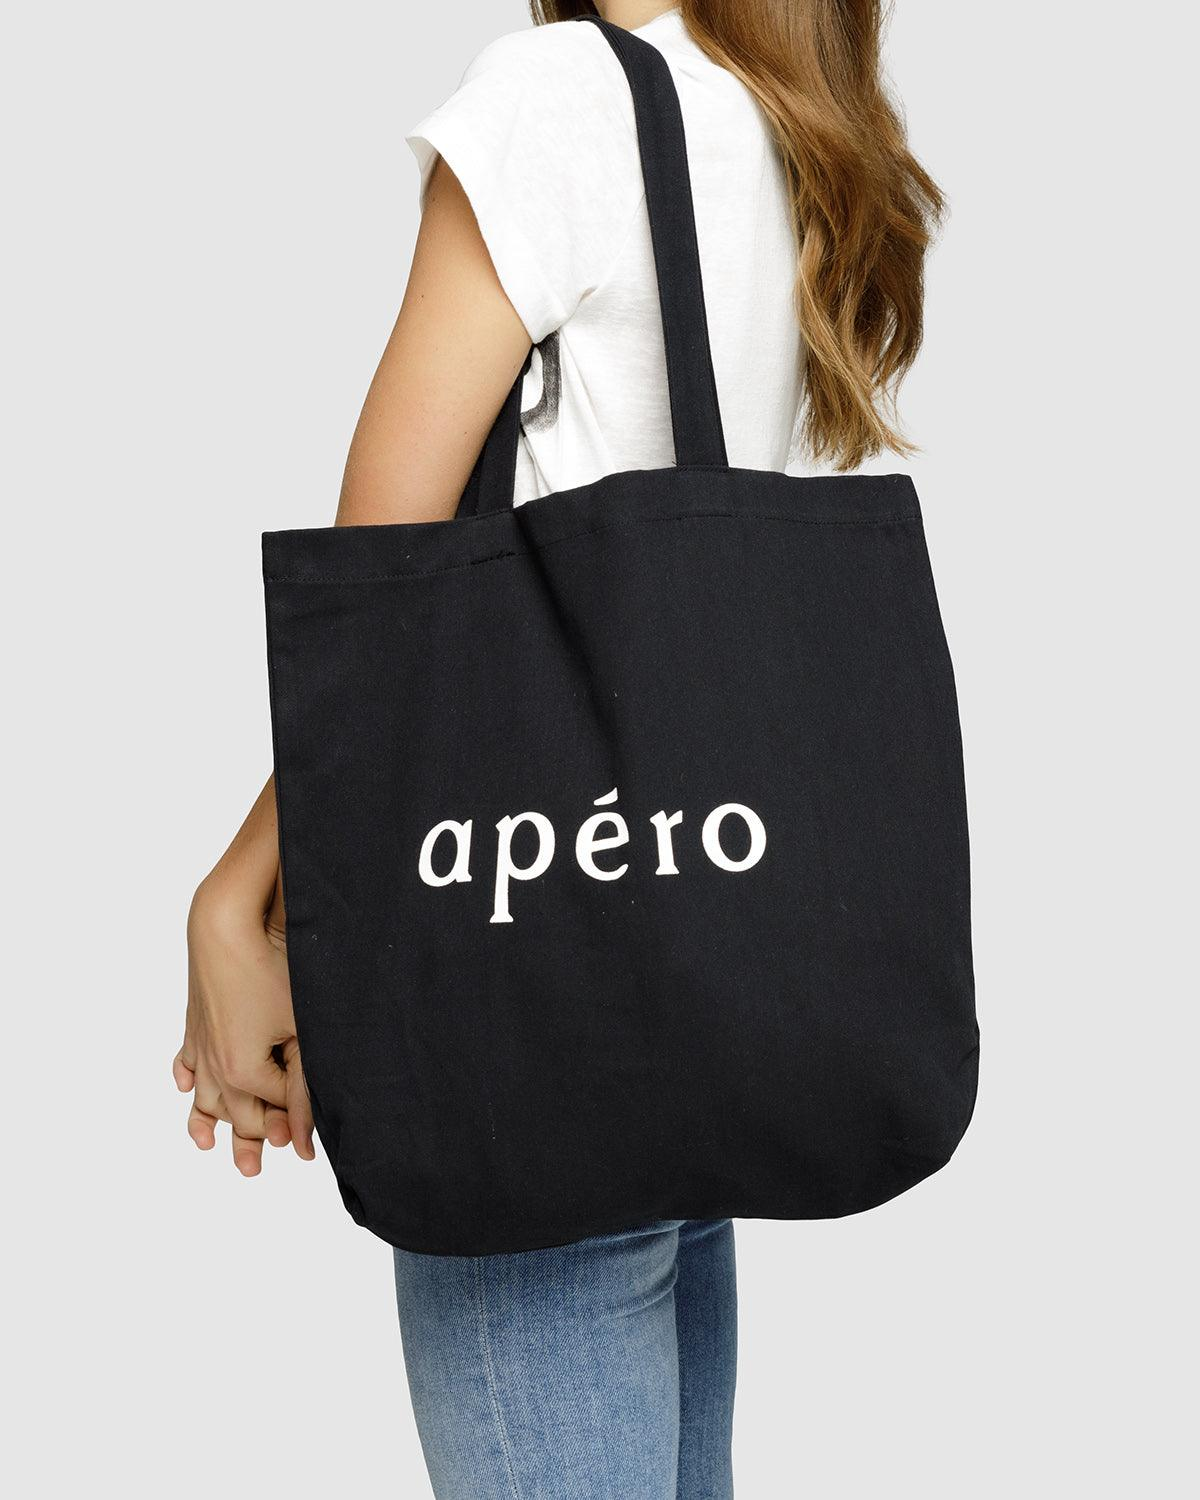 Apero Tote Bag - Black